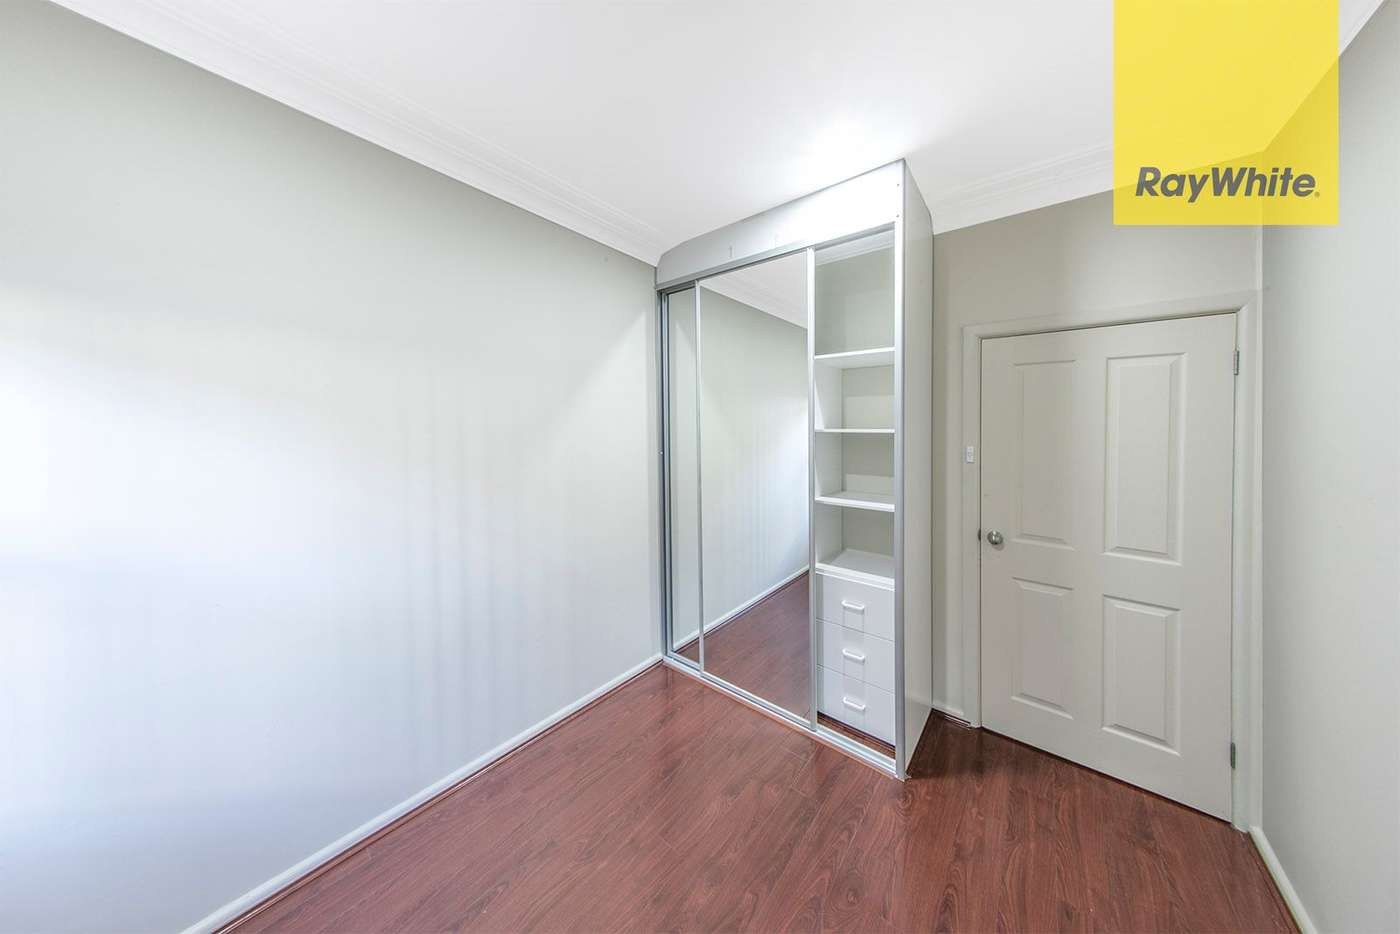 Sixth view of Homely house listing, 9 Whitworth Street, Westmead NSW 2145